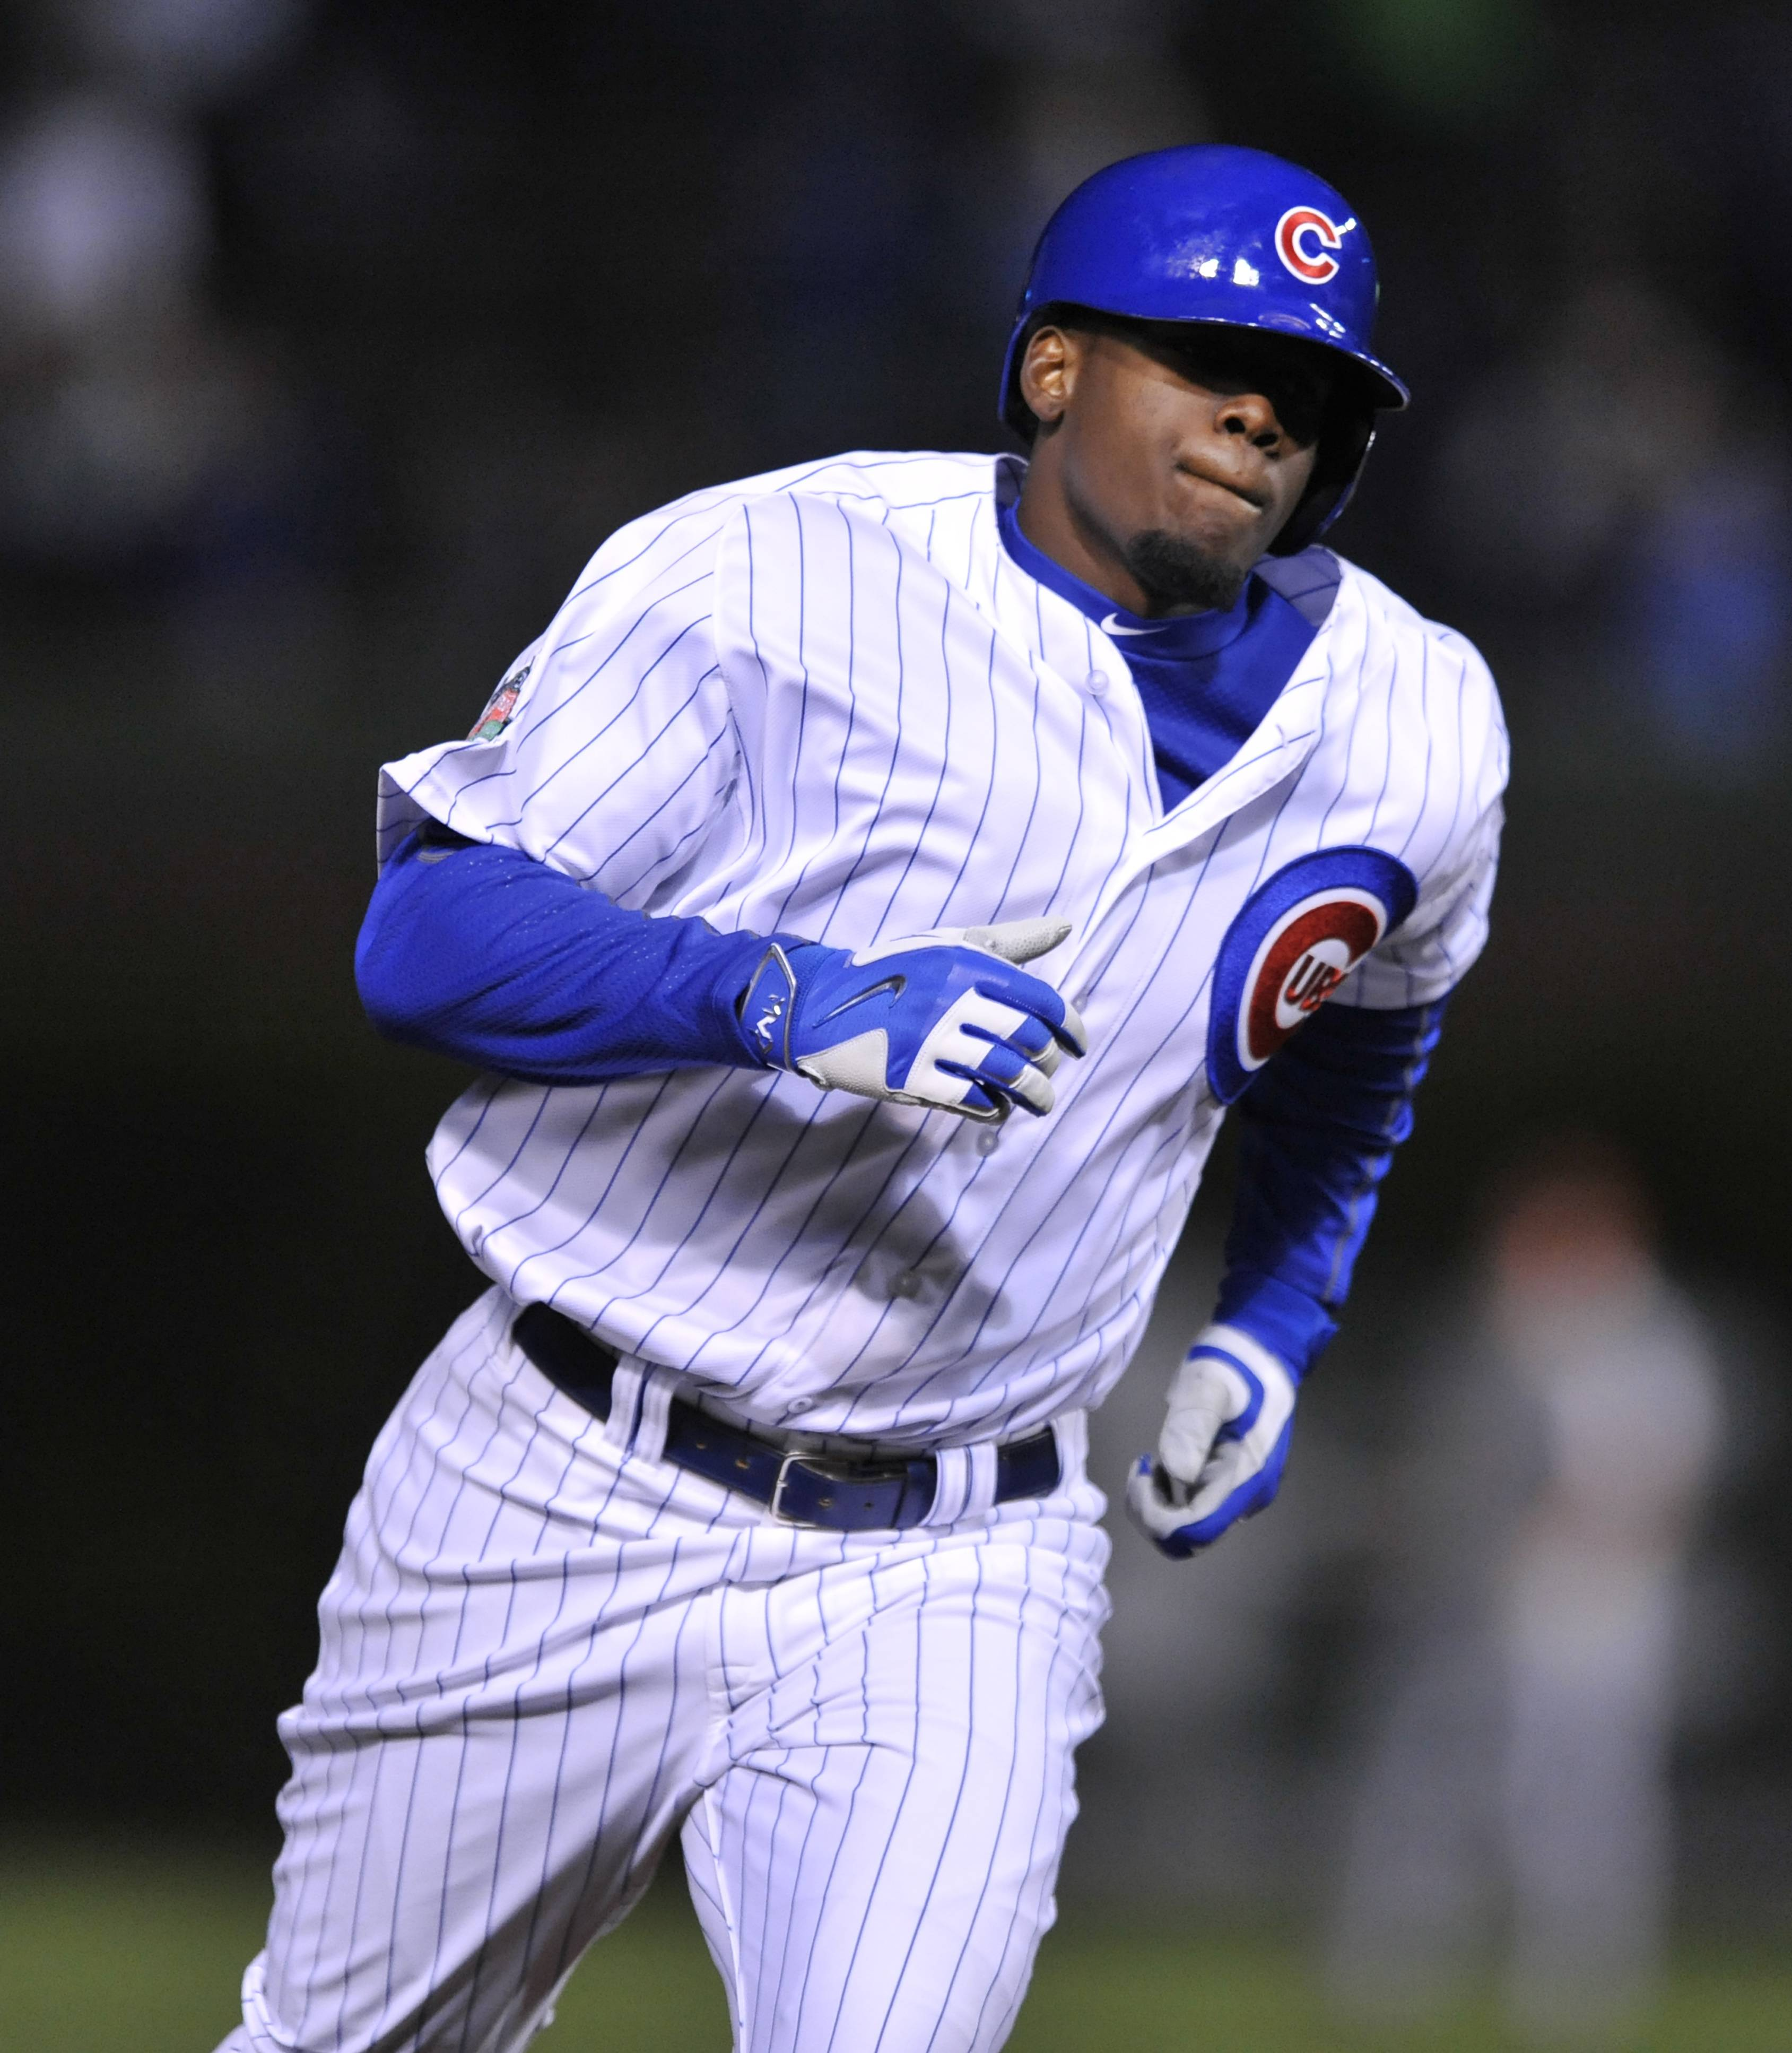 Cubs rookie Jorge Soler has hit safely in 15 of his first 17 big-lead games, going 22-for-61, a .361 average. He has a t least 1 RBI in 12 games.